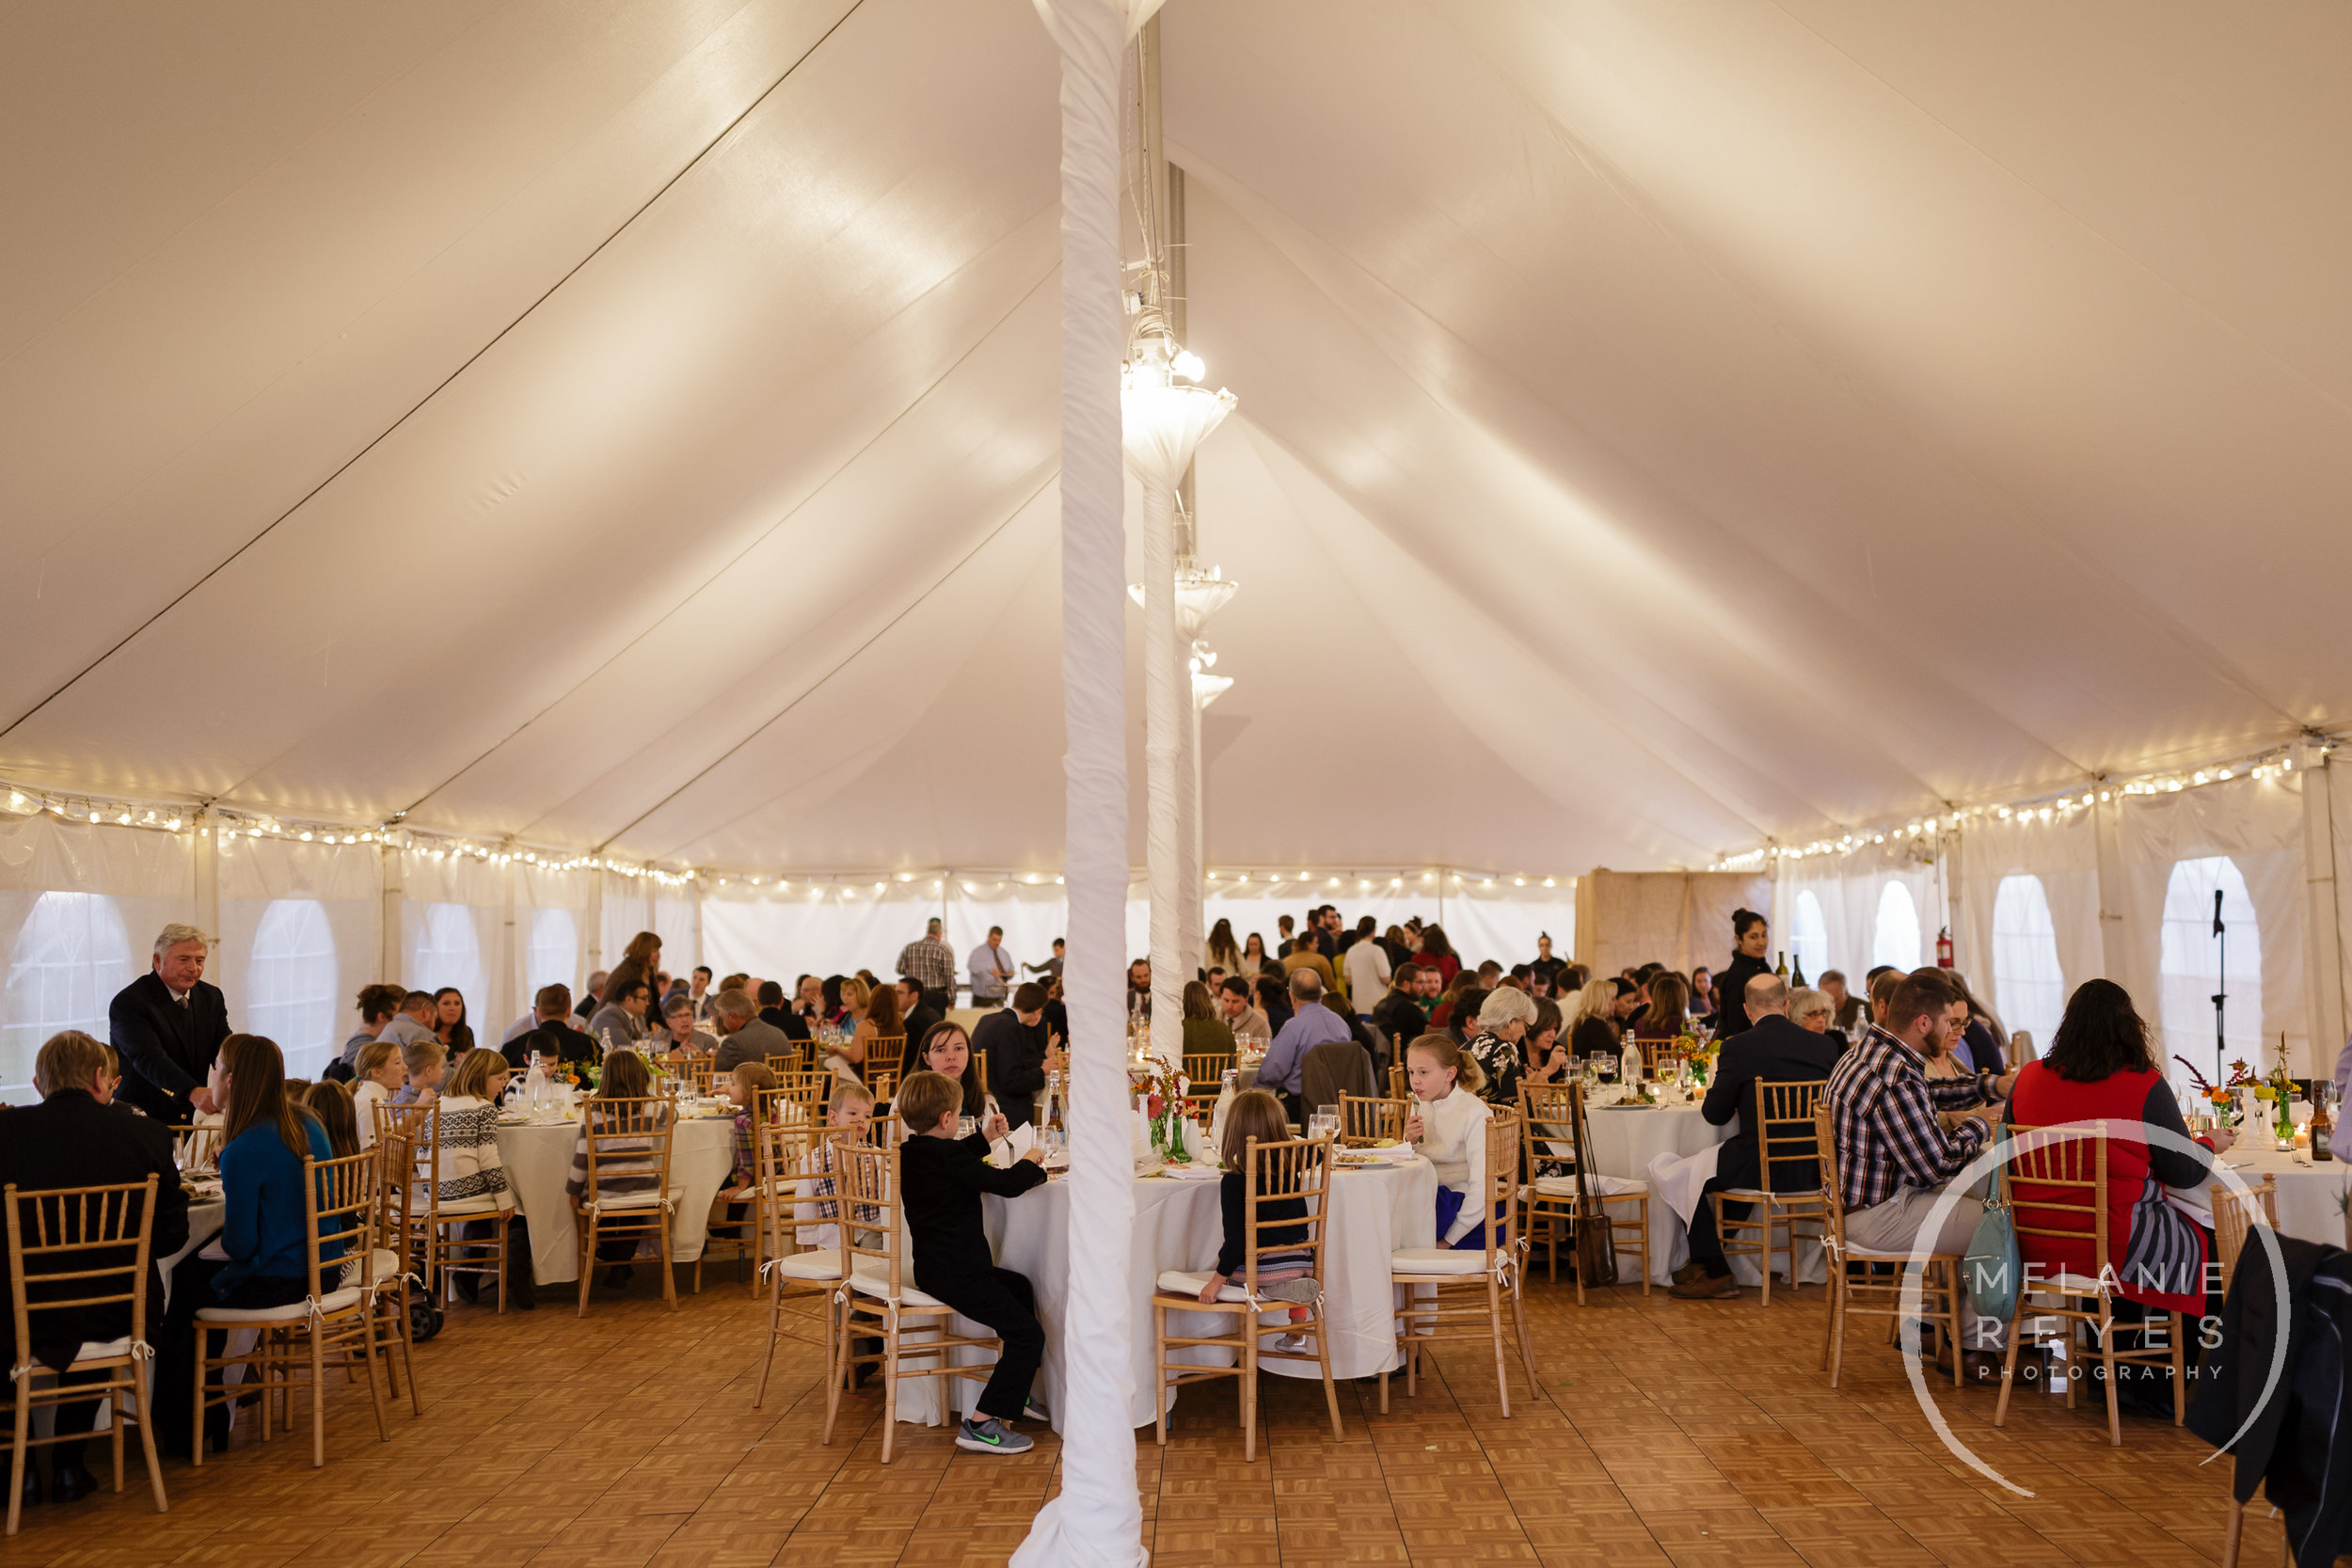 zingermans_cornman_farms_wedding_melanie_reyes_photography_046.JPG